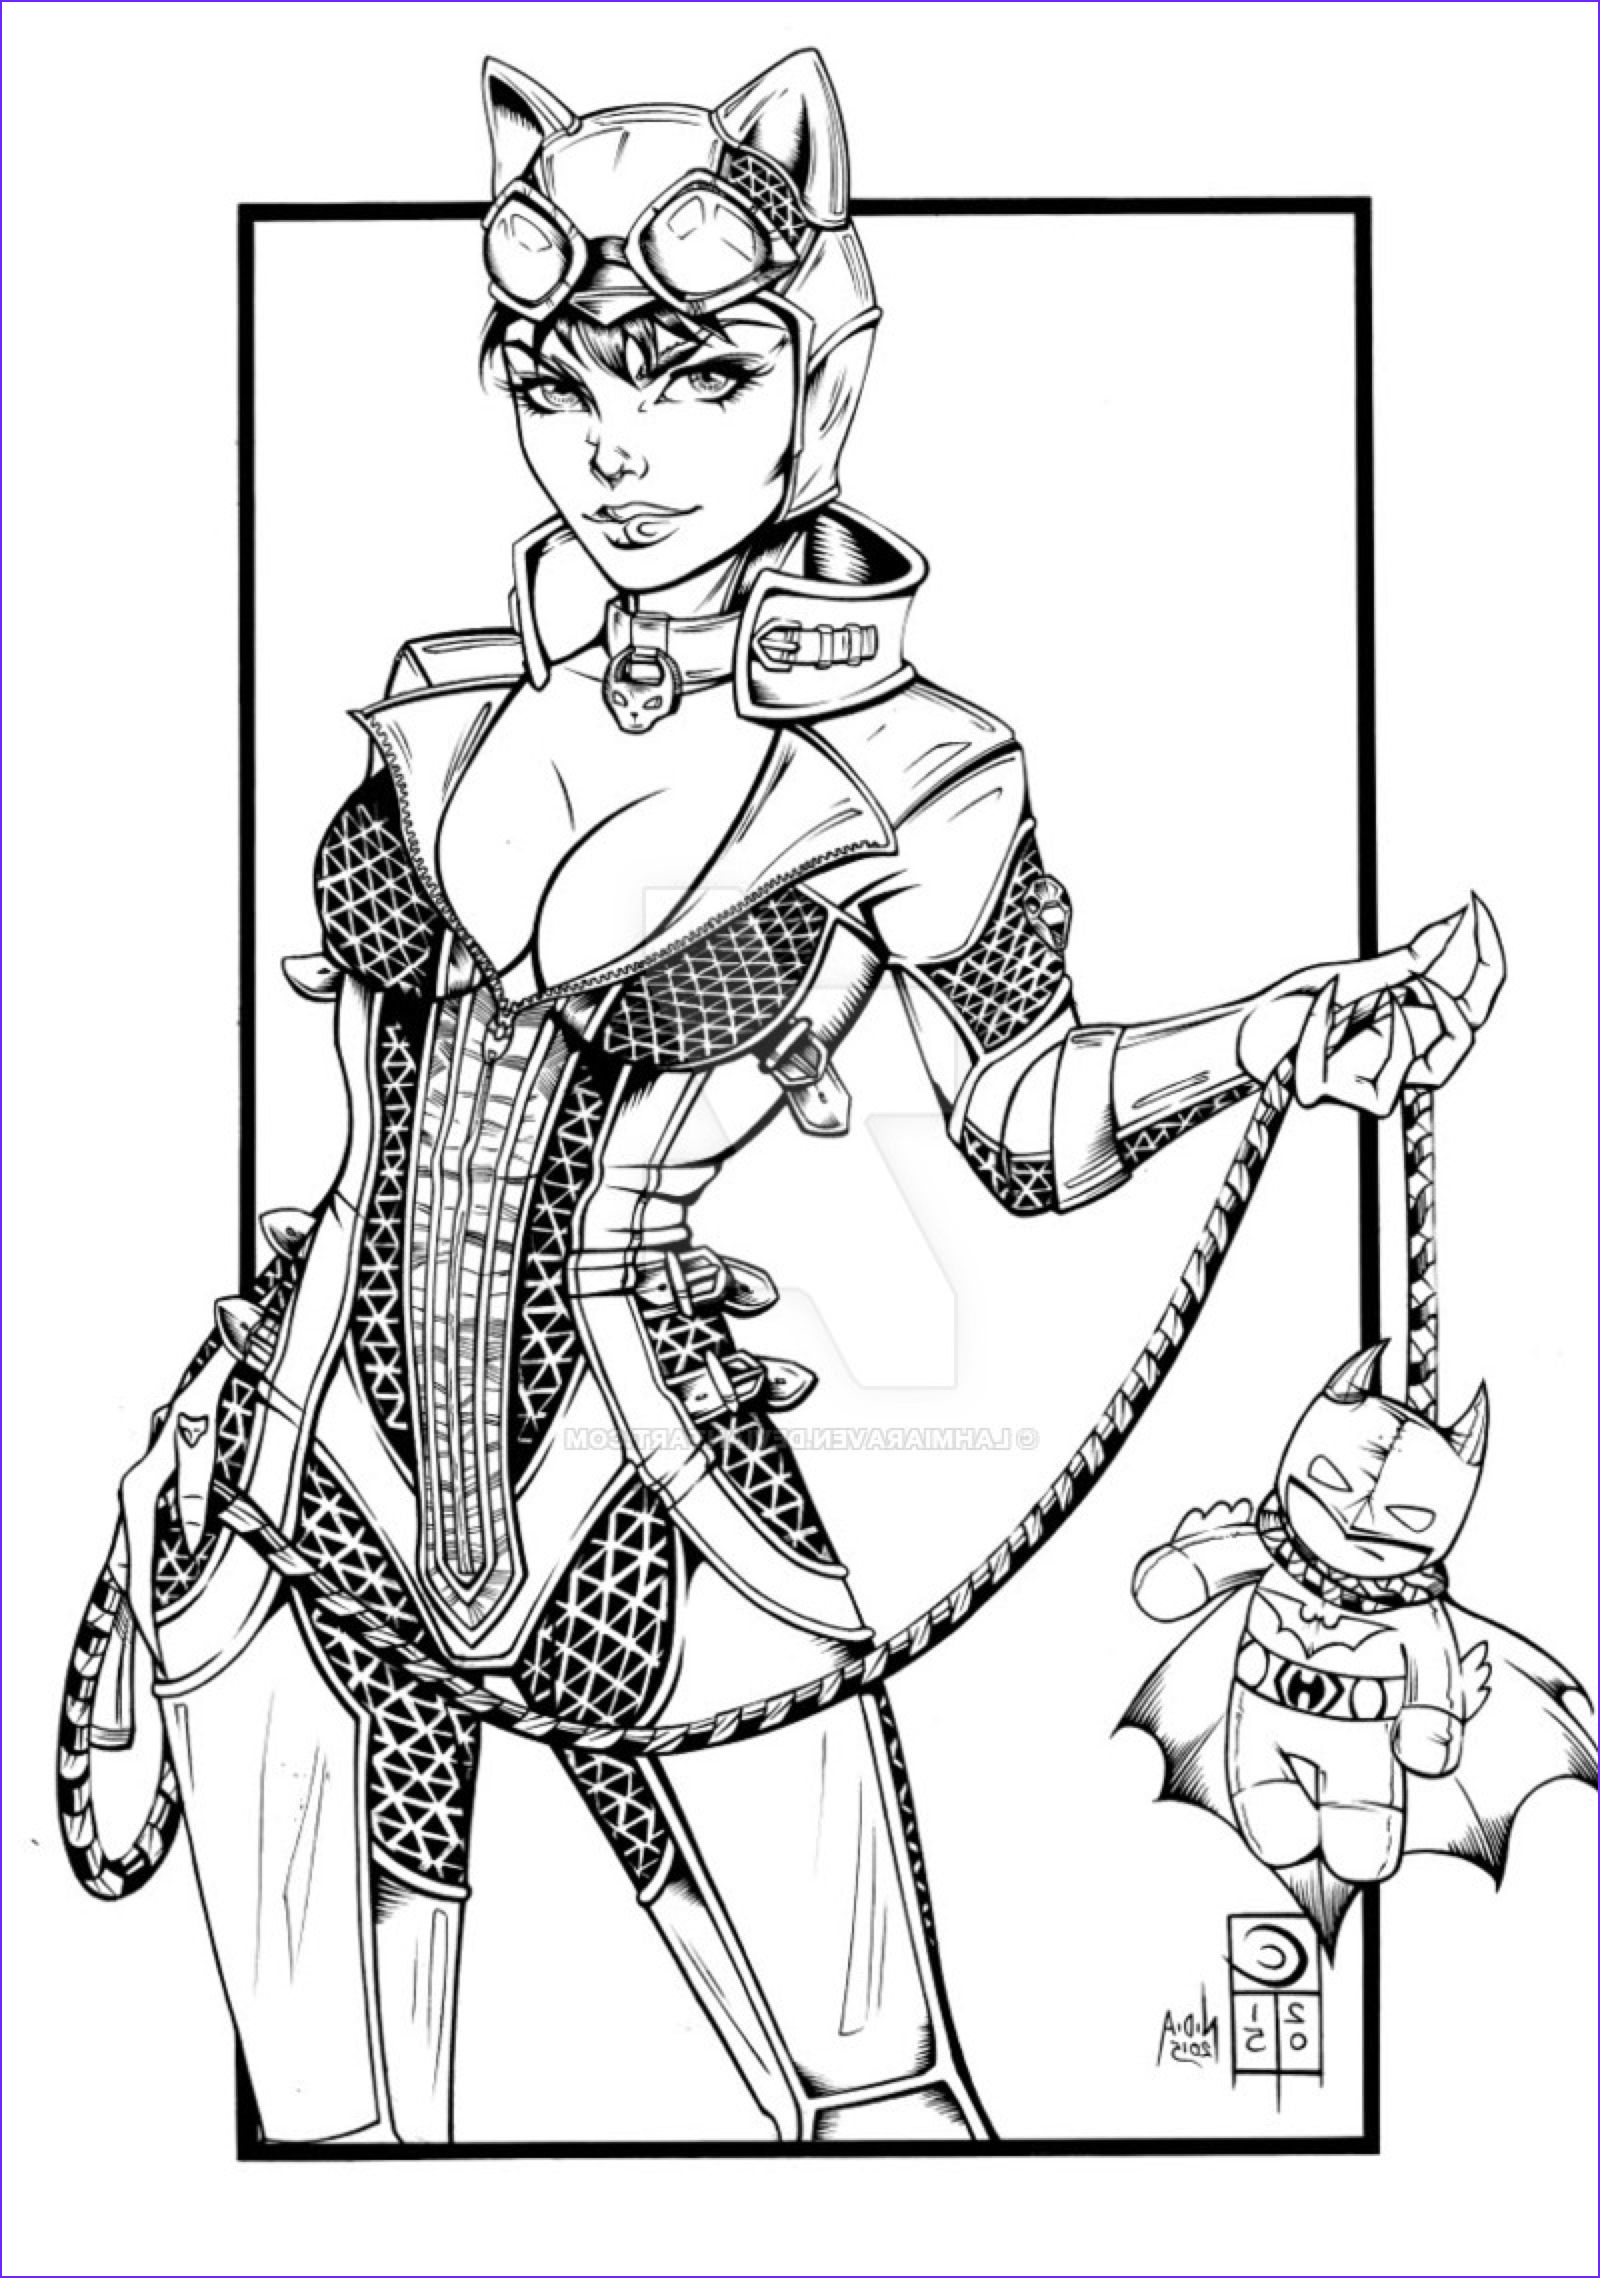 Catwoman Coloring Page Unique Gallery Catwoman Plush Turner By Lahmiaraven On Deviantart